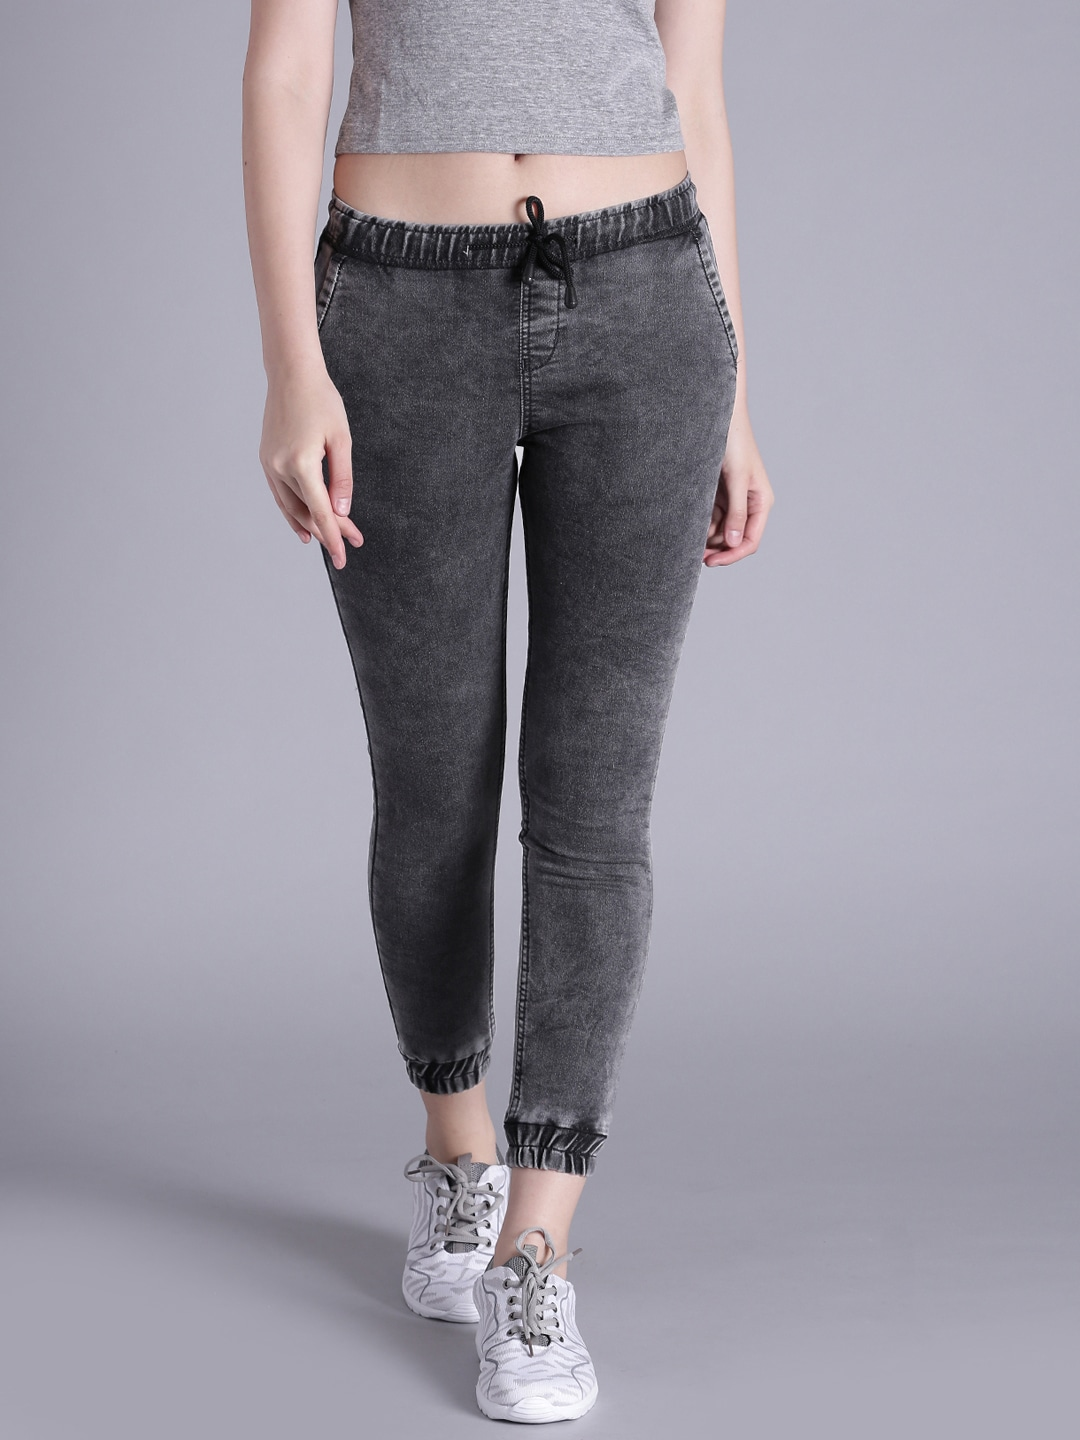 Kook N Keech Women Charcoal Grey Jogger Stretchable Jeans image